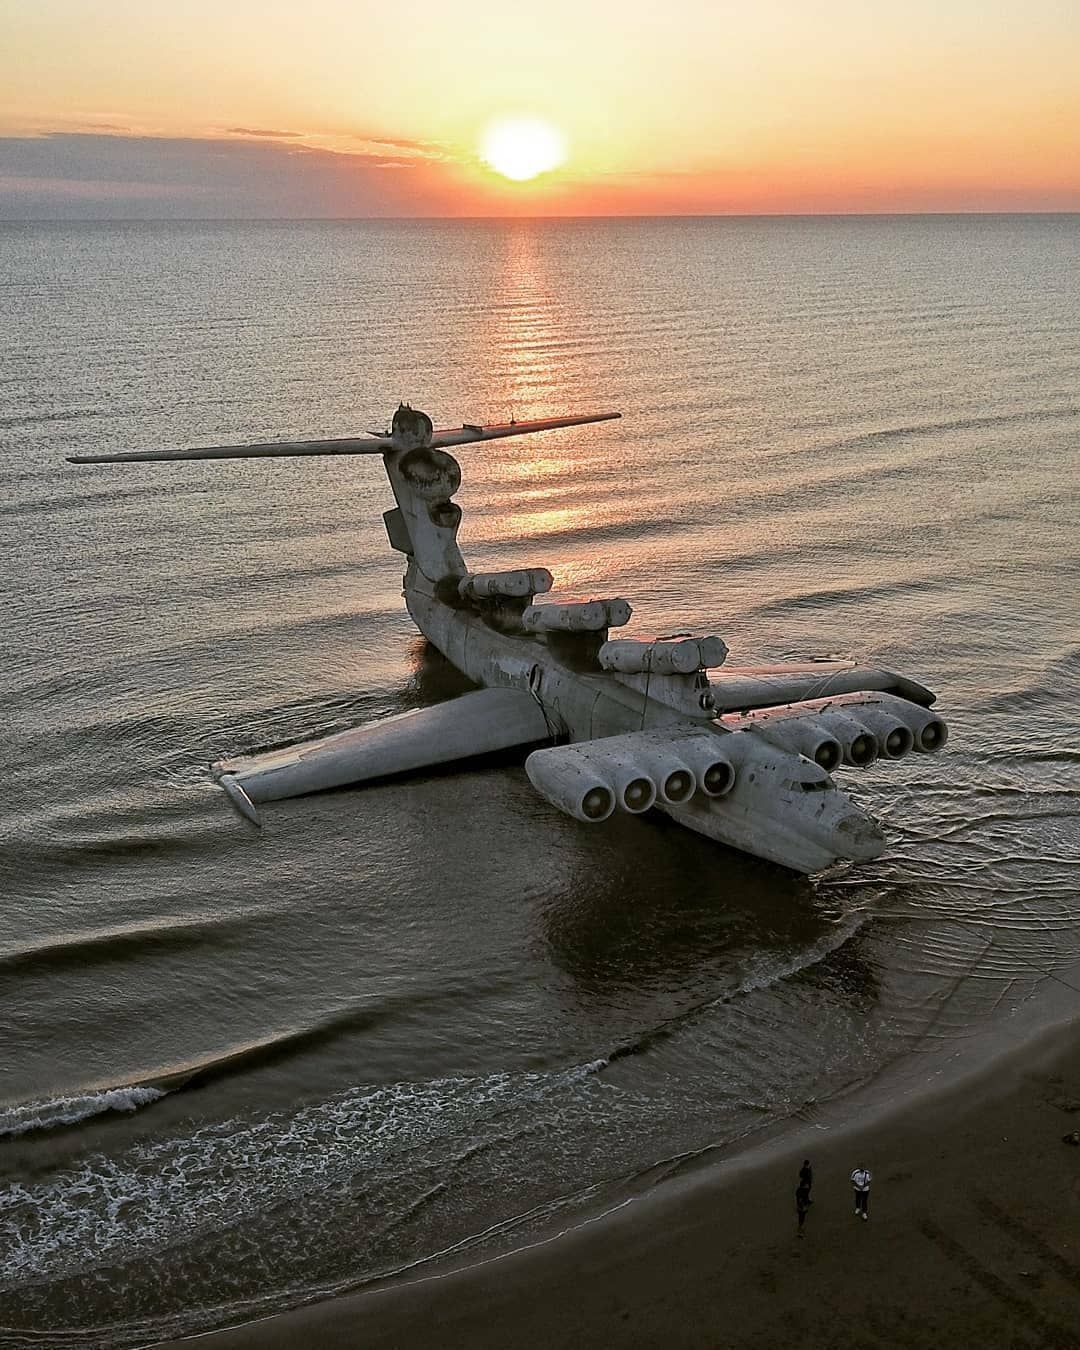 8 Reasons Why The Lun-Class Ekranoplan Is The Coolest Invention Ever To Be Forgotten